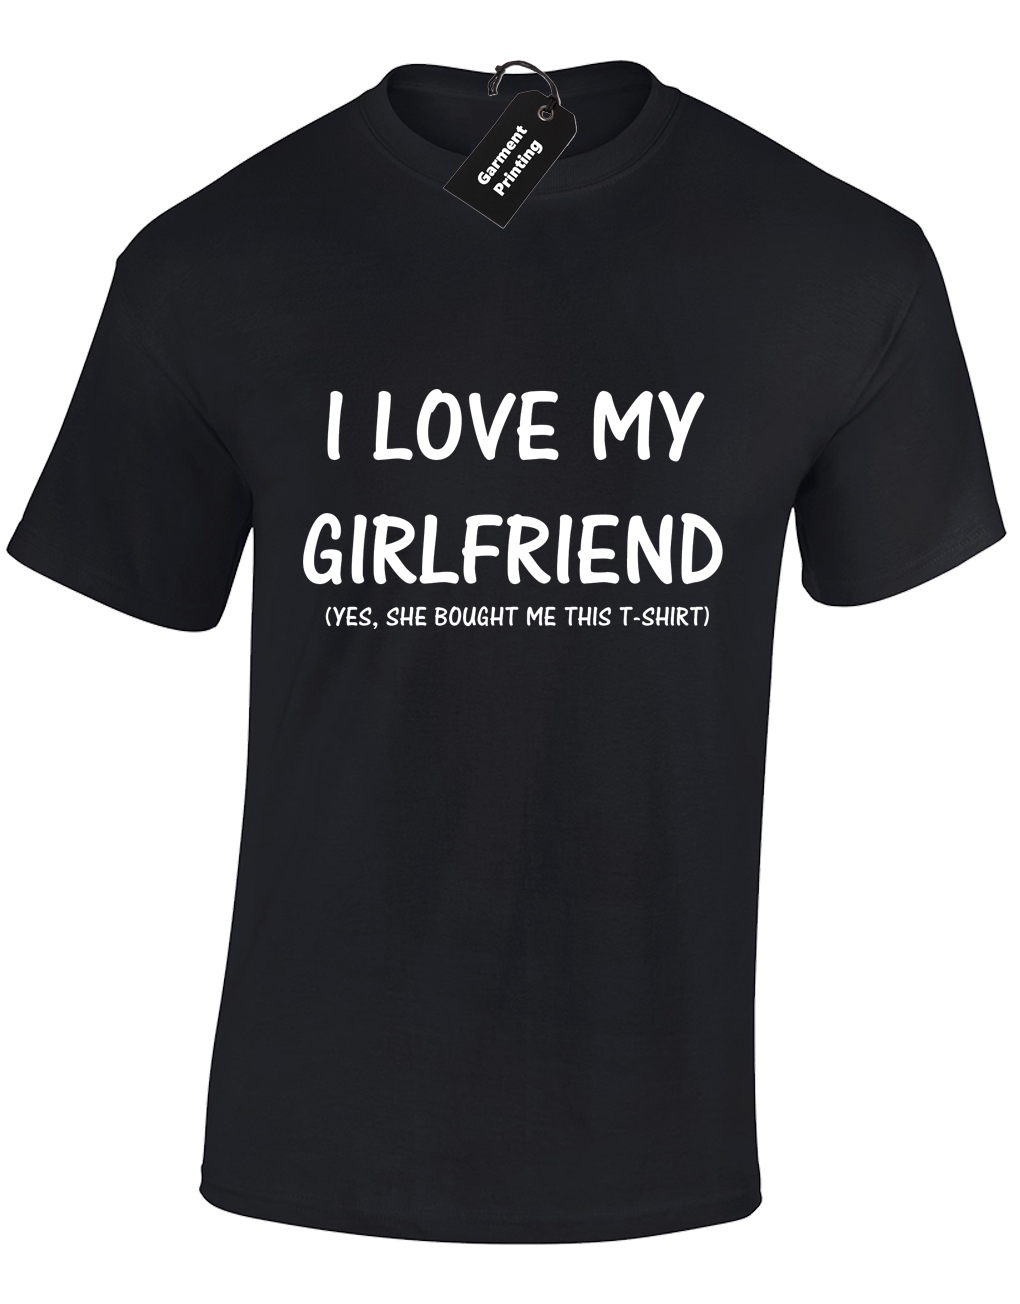 47fef2719 I LOVE MY GIRLFRIEND MENS T SHIRT FUNNY DESIGN BOYFRIEND GIFT IDEA QUALITY  TOP Cool Casual